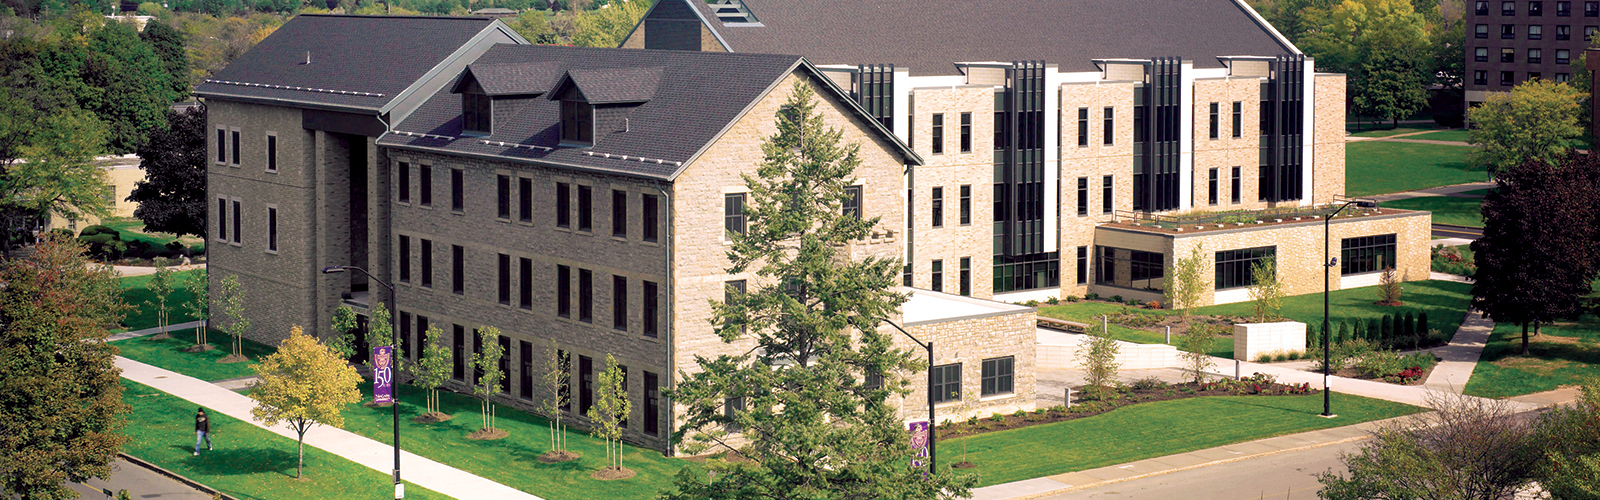 NU's Bisgrove Hall, home to the College of Business. <span class='image-credits'>Niagara University</span>